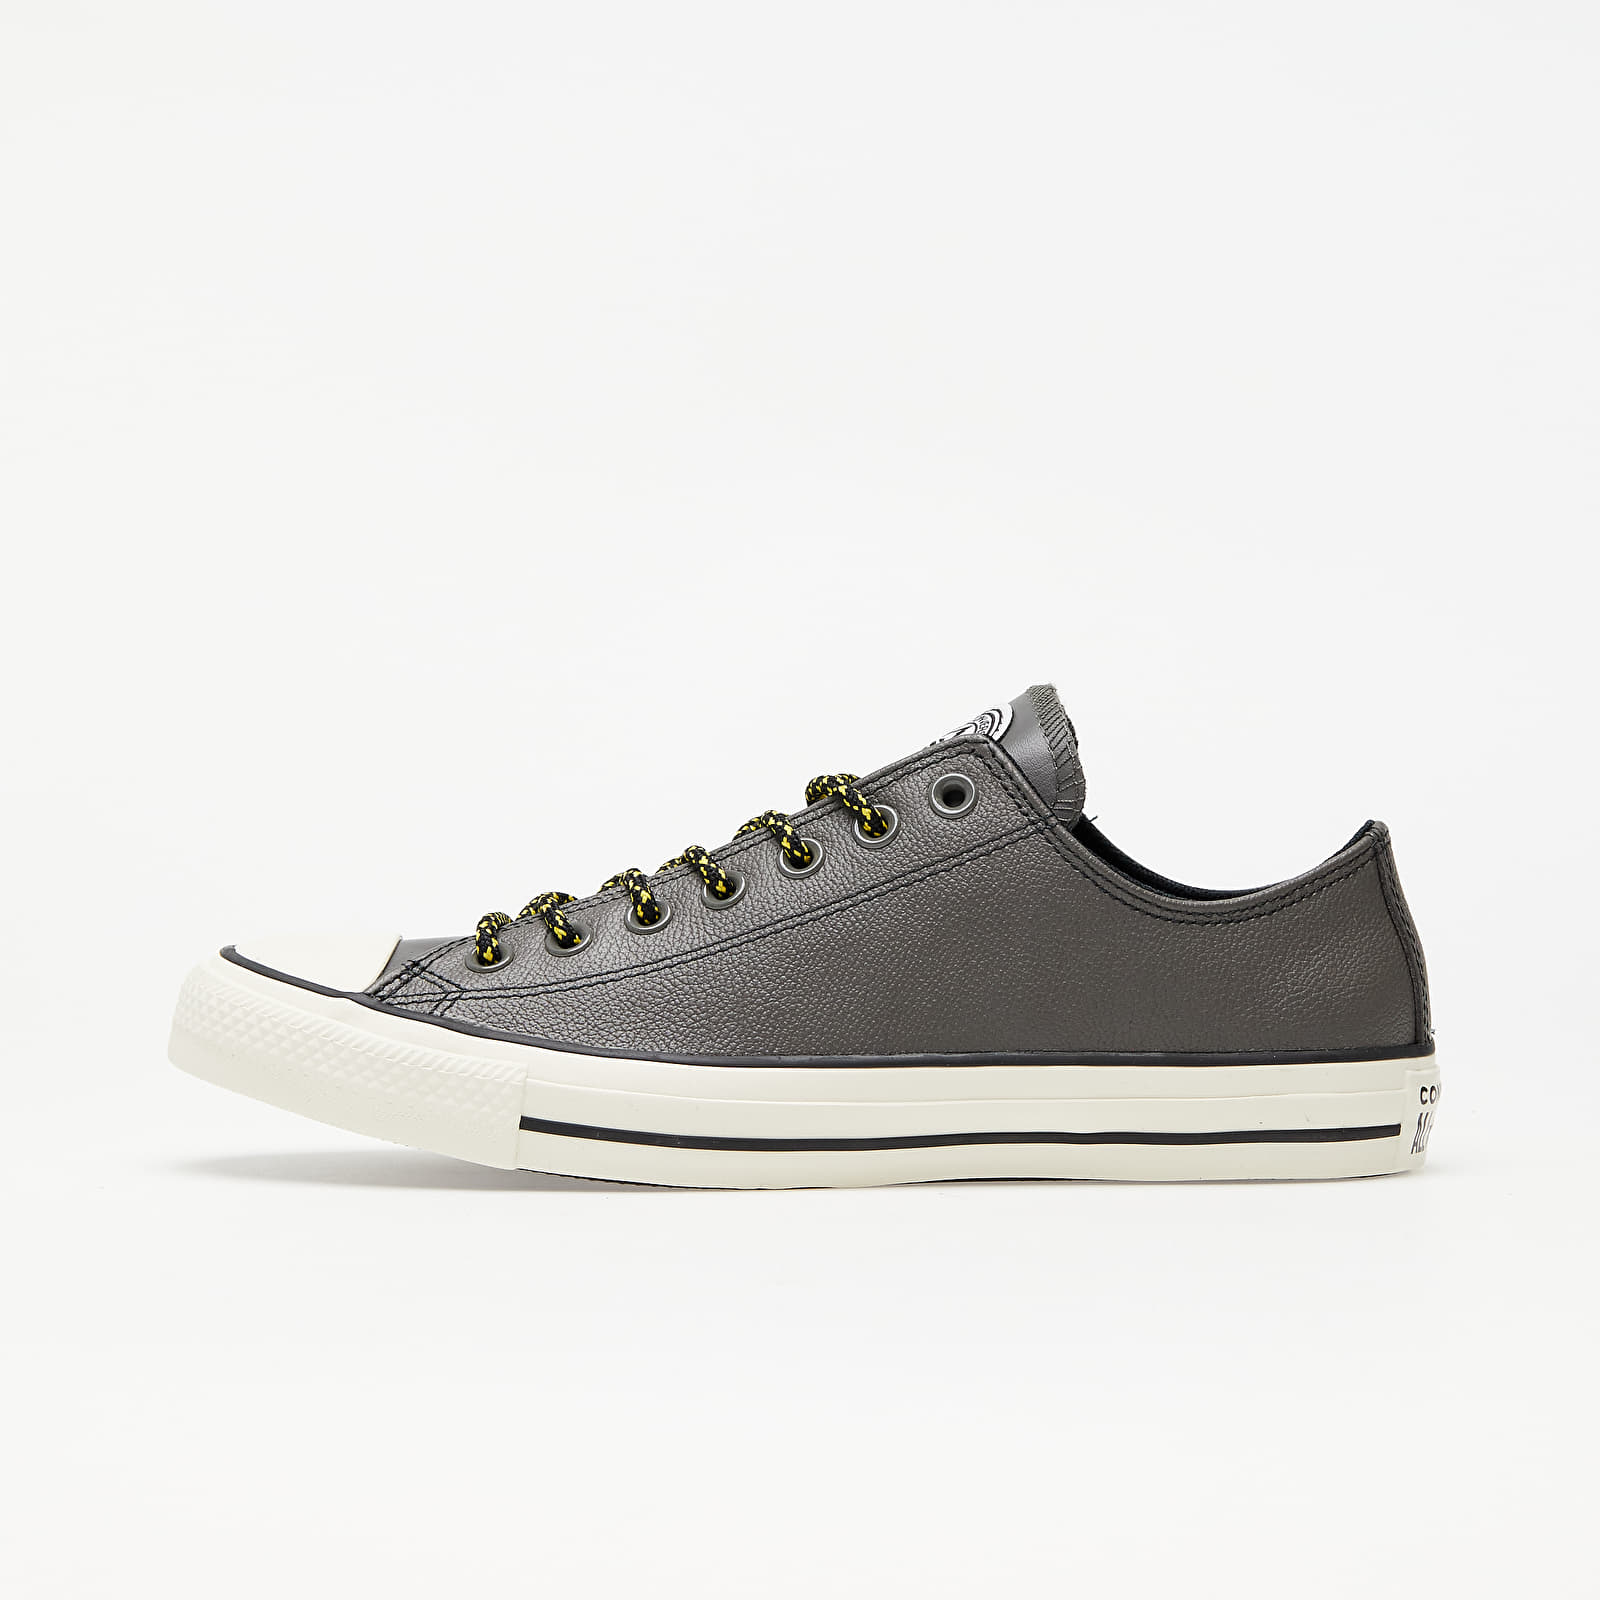 Converse Chuck Taylor All Star Archival Leather Carbon Grey/ Vivid Sulfur/ Egret EUR 46